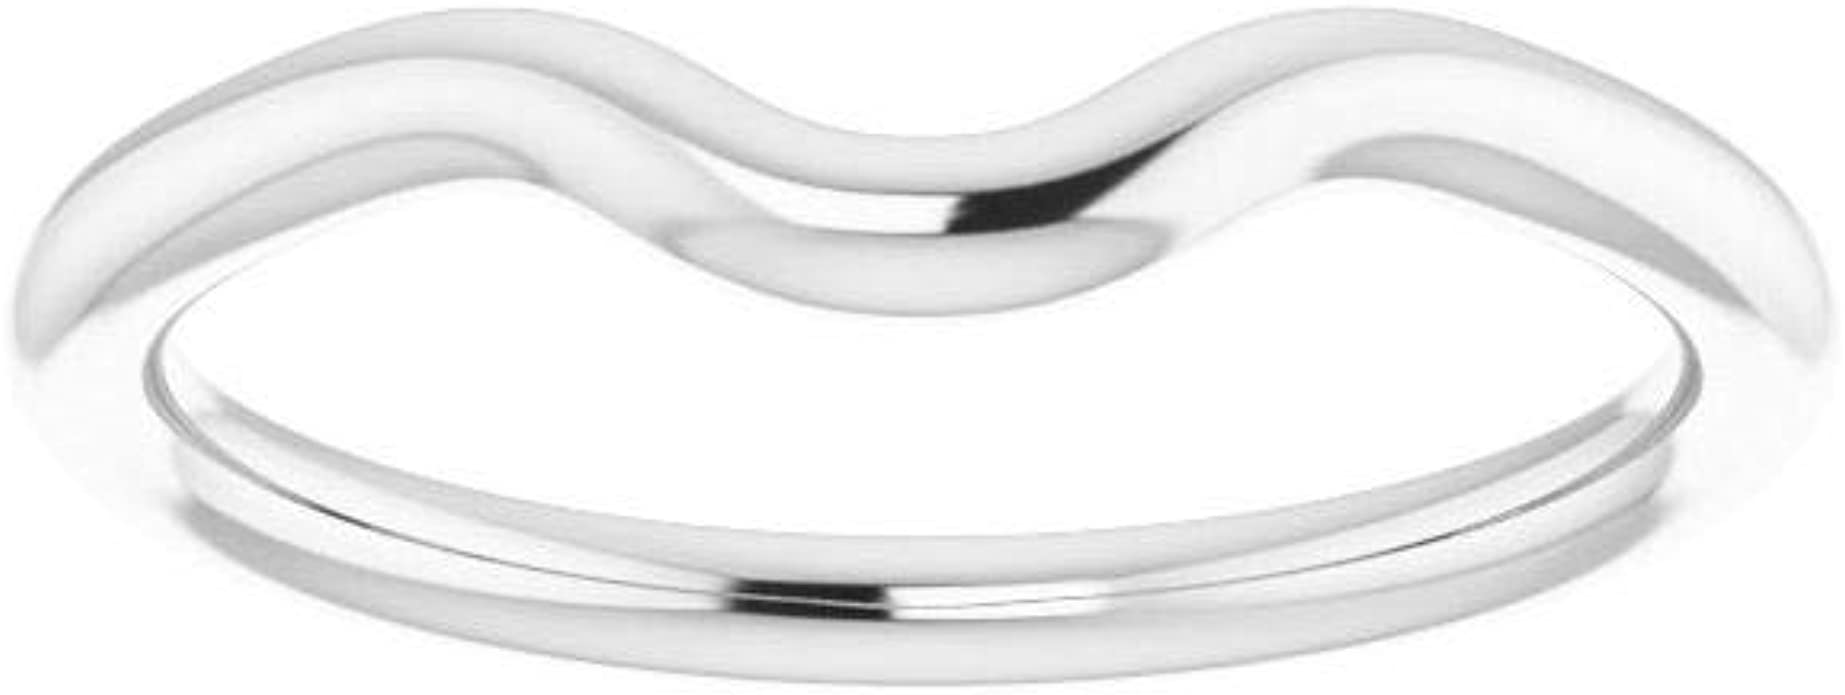 Size 7 Bonyak Jewelry Continuum Sterling Silver Band for 5.5 mm Round Ring